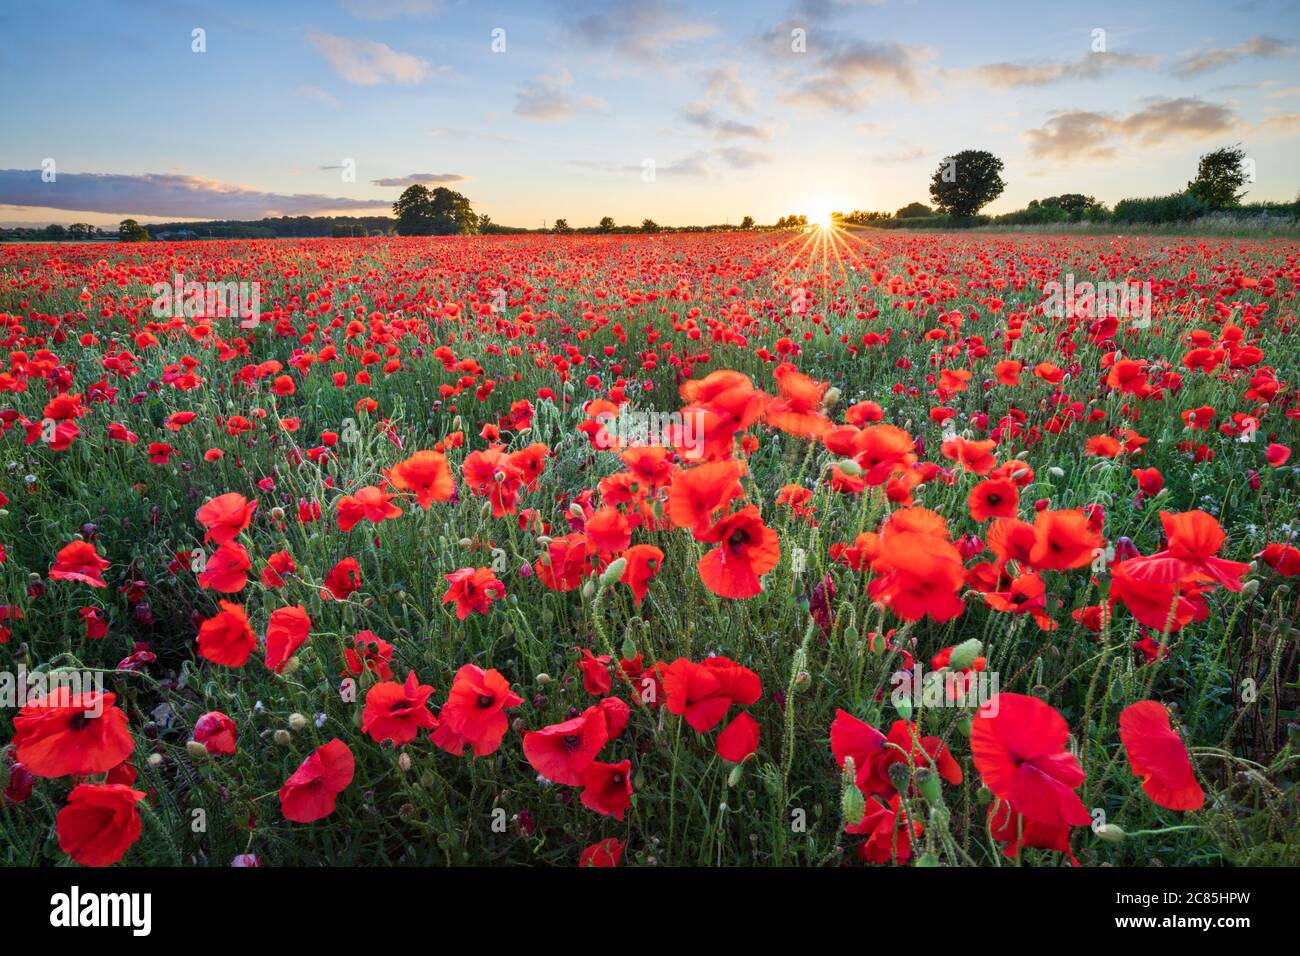 Red poppies growing in field at sunset, near Hungerford, West Berkshire, England, United Kingdom, Europe Stock Photo